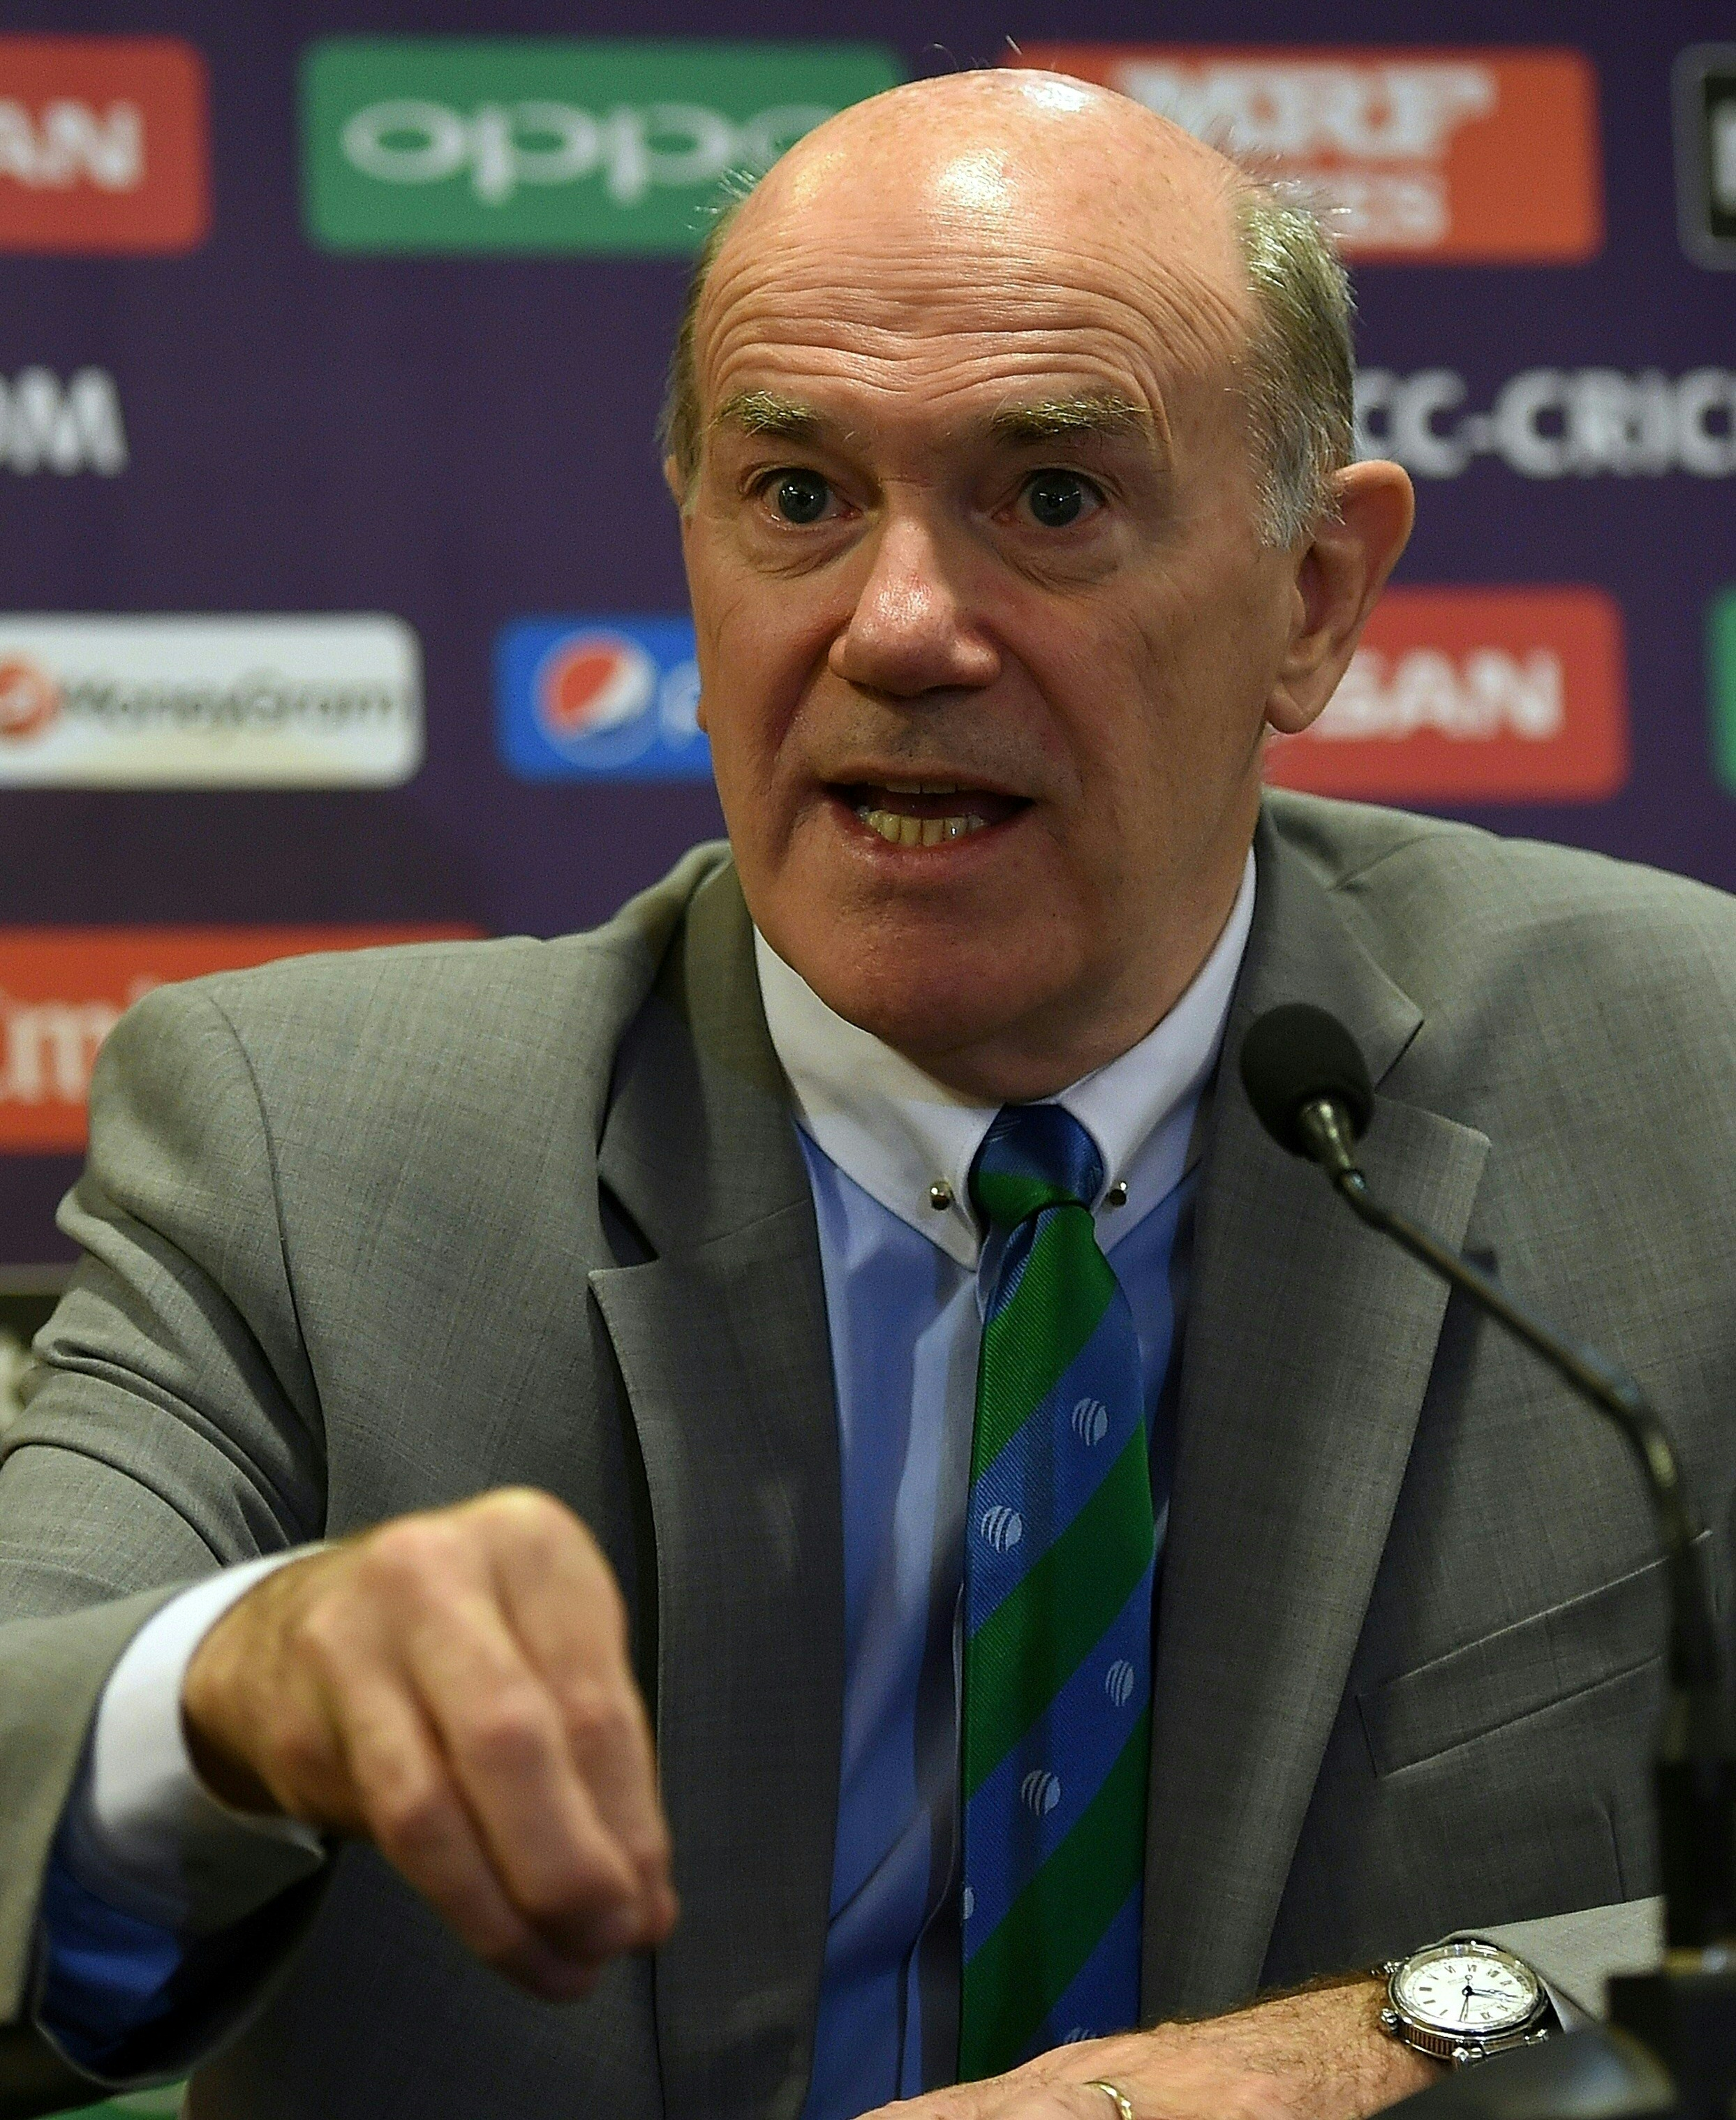 The head of anti-corruption and security at International Cricket Council (ICC) Ronnie Flanagan speaks during a news conference in the Indian city of Mumbai on March 6, 2016. The 27-day ICC T20 Cricket World Cup begins in India from March 8, 2016 and will be played across Bangalore, Chennai, Dharamsala, Kolkata, Mohali, Mumbai, Nagpur and New Delhi. / AFP / PUNIT PARANJPE